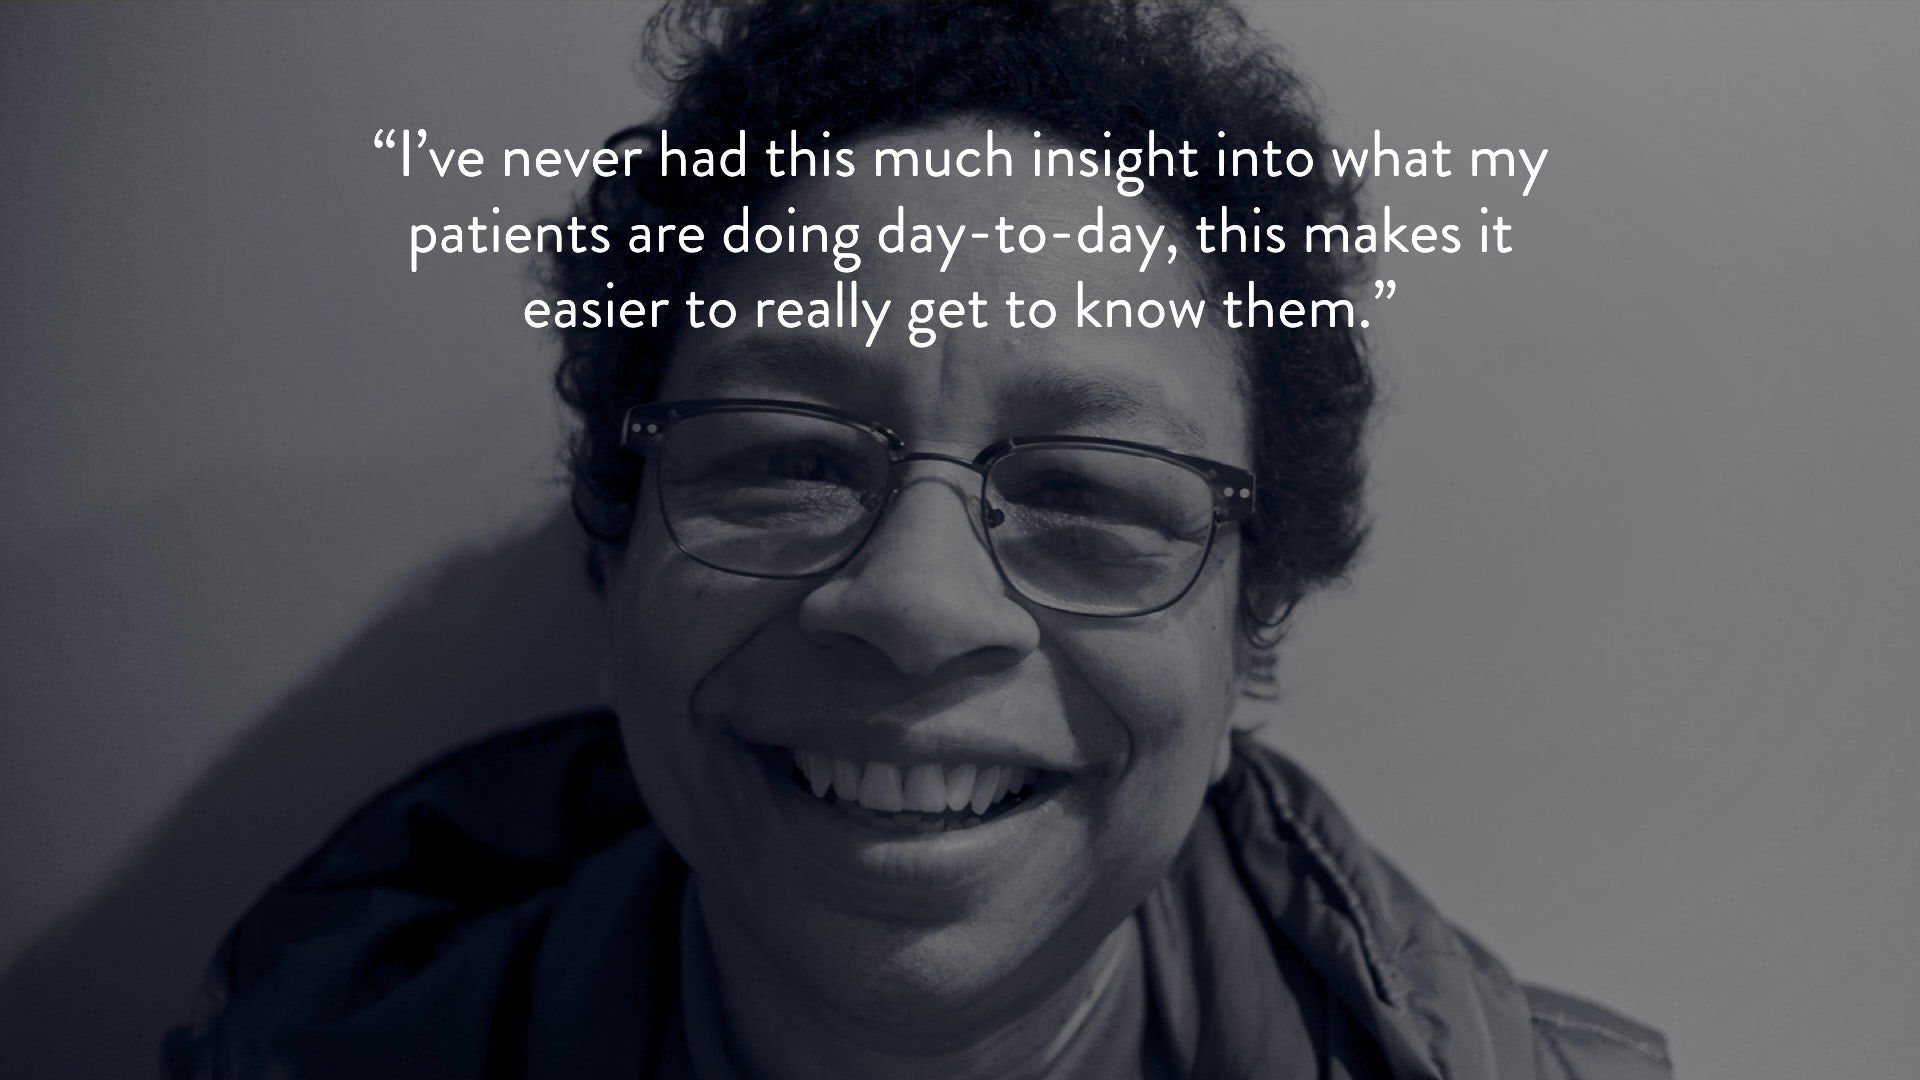 Care Manager quote